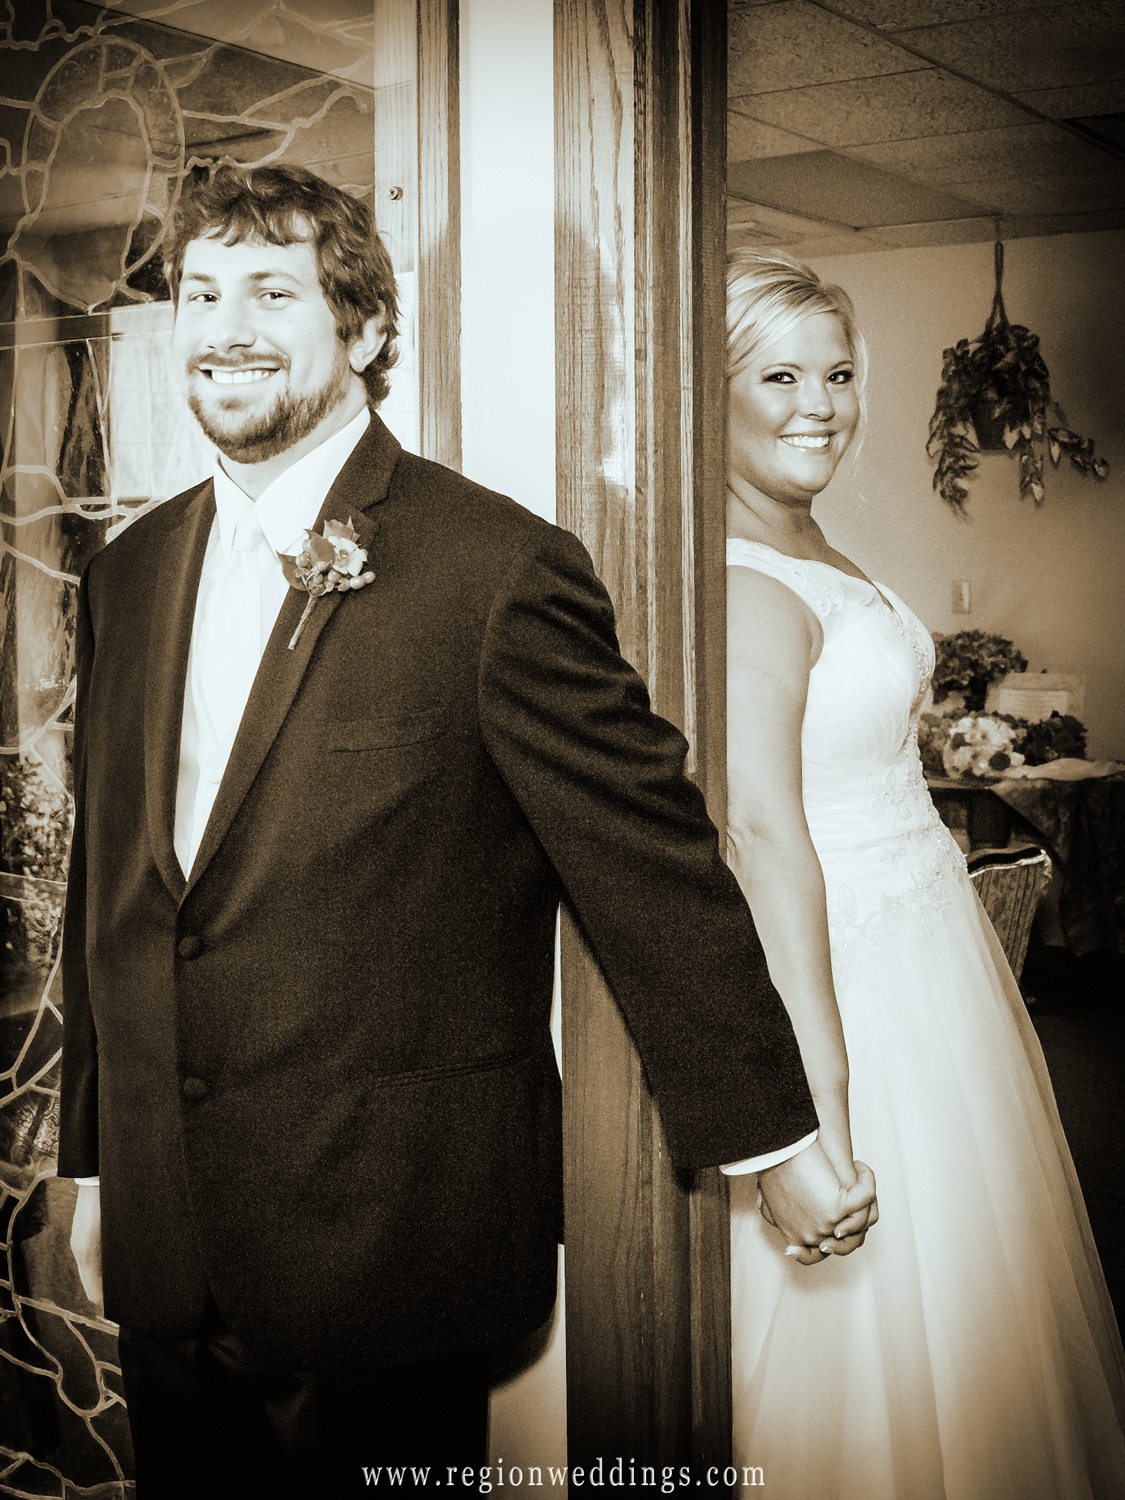 The bride and groom hold hands on each side of a door for their peek-a-boo almost first look wedding photo.